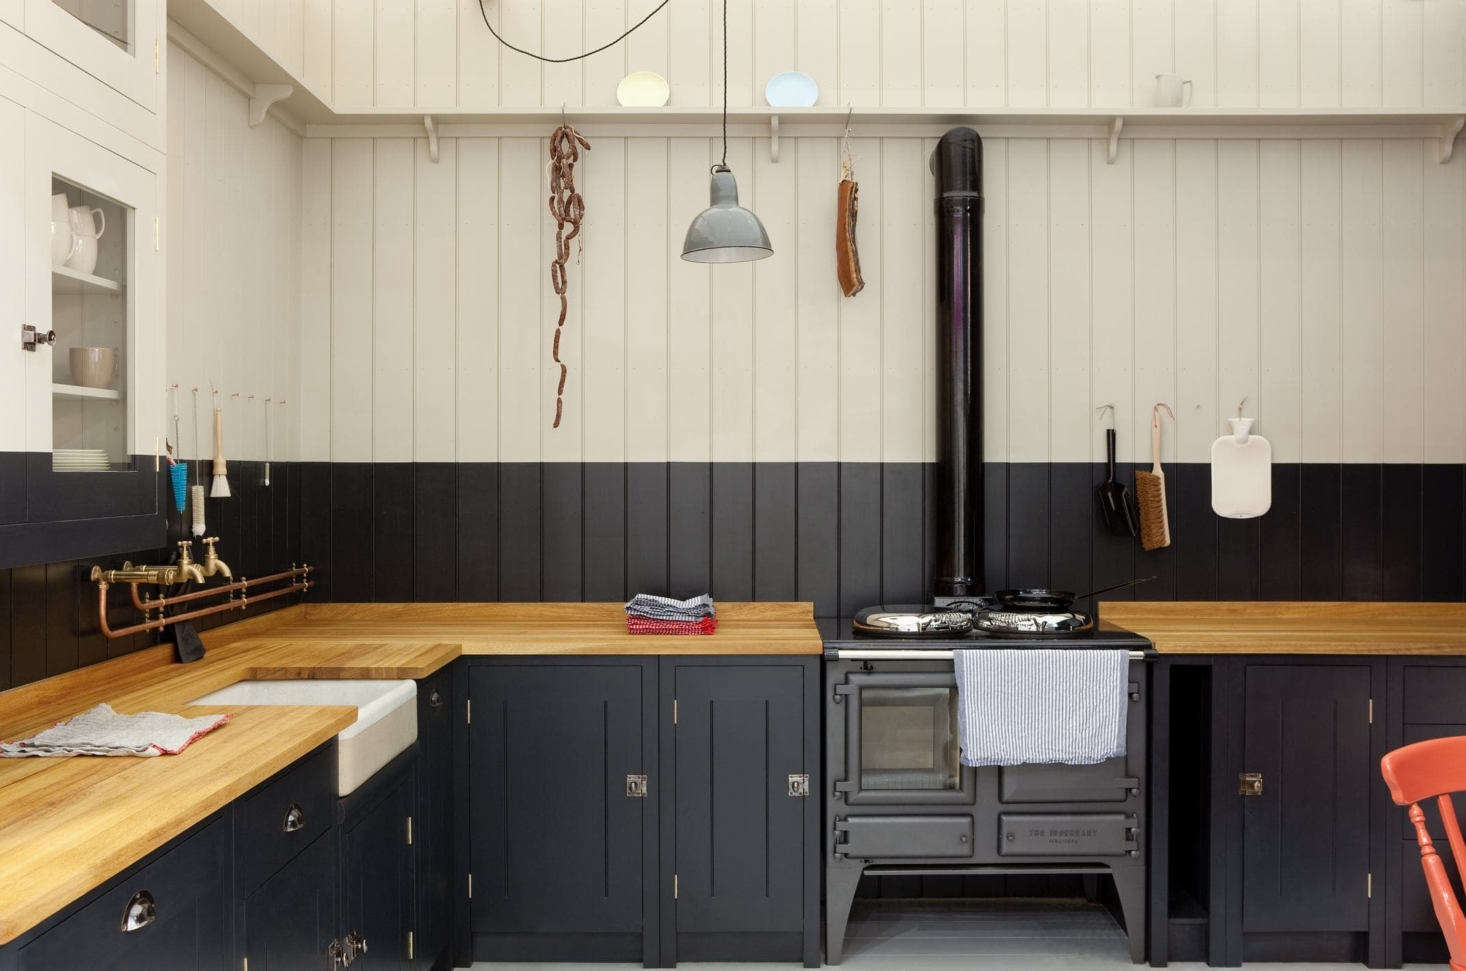 Incredible A Kitchen For The People Courtesy Of Prince Charles Download Free Architecture Designs Scobabritishbridgeorg